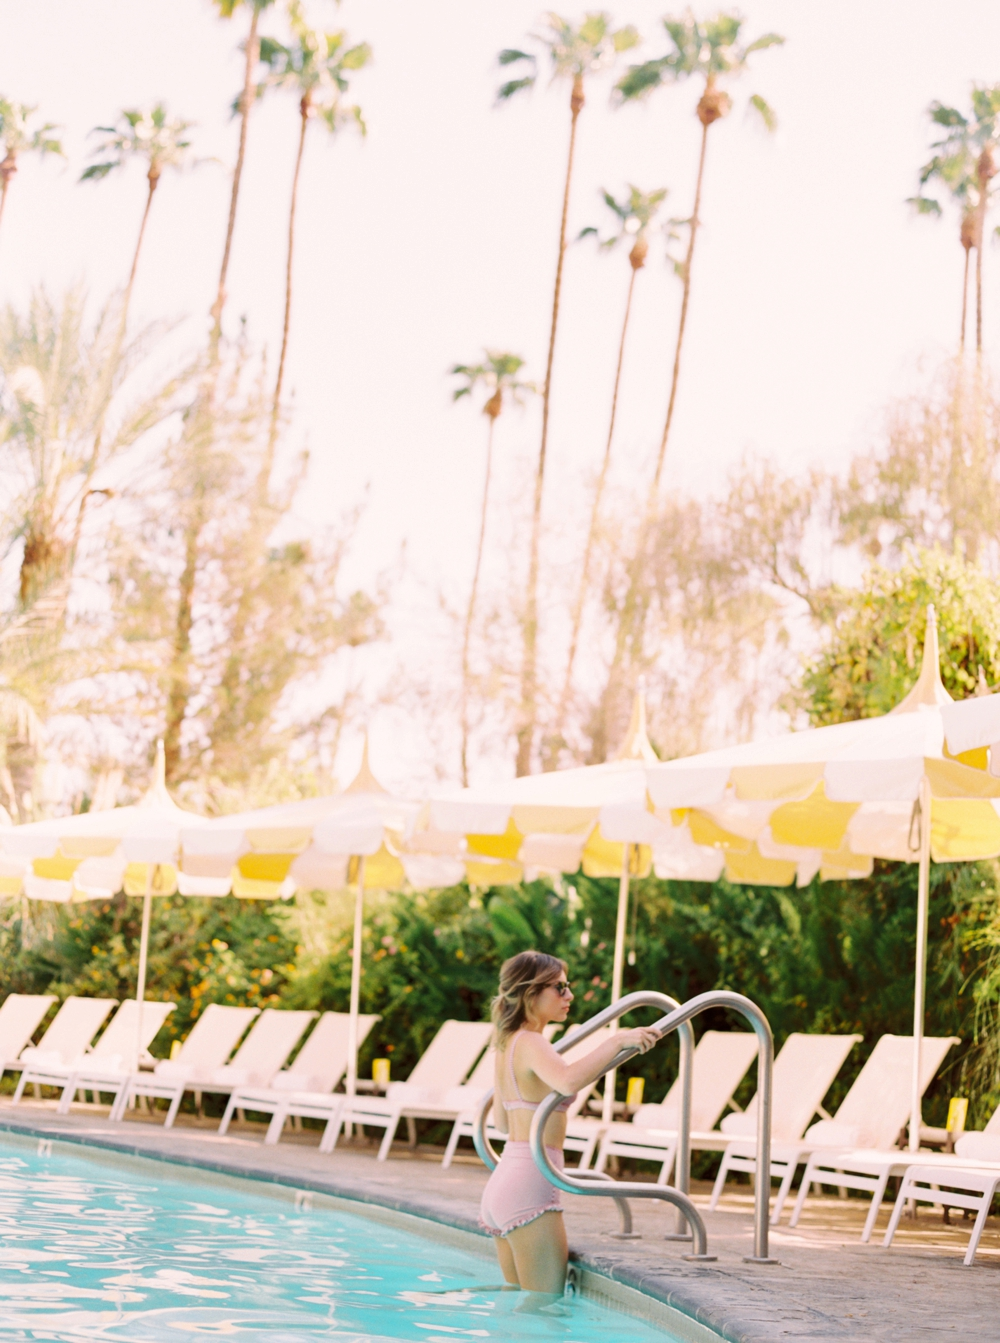 California Wedding Photographers | The Parker Palm Springs | Life Set Sail at the Pool | Canadian Fashion Bloggers